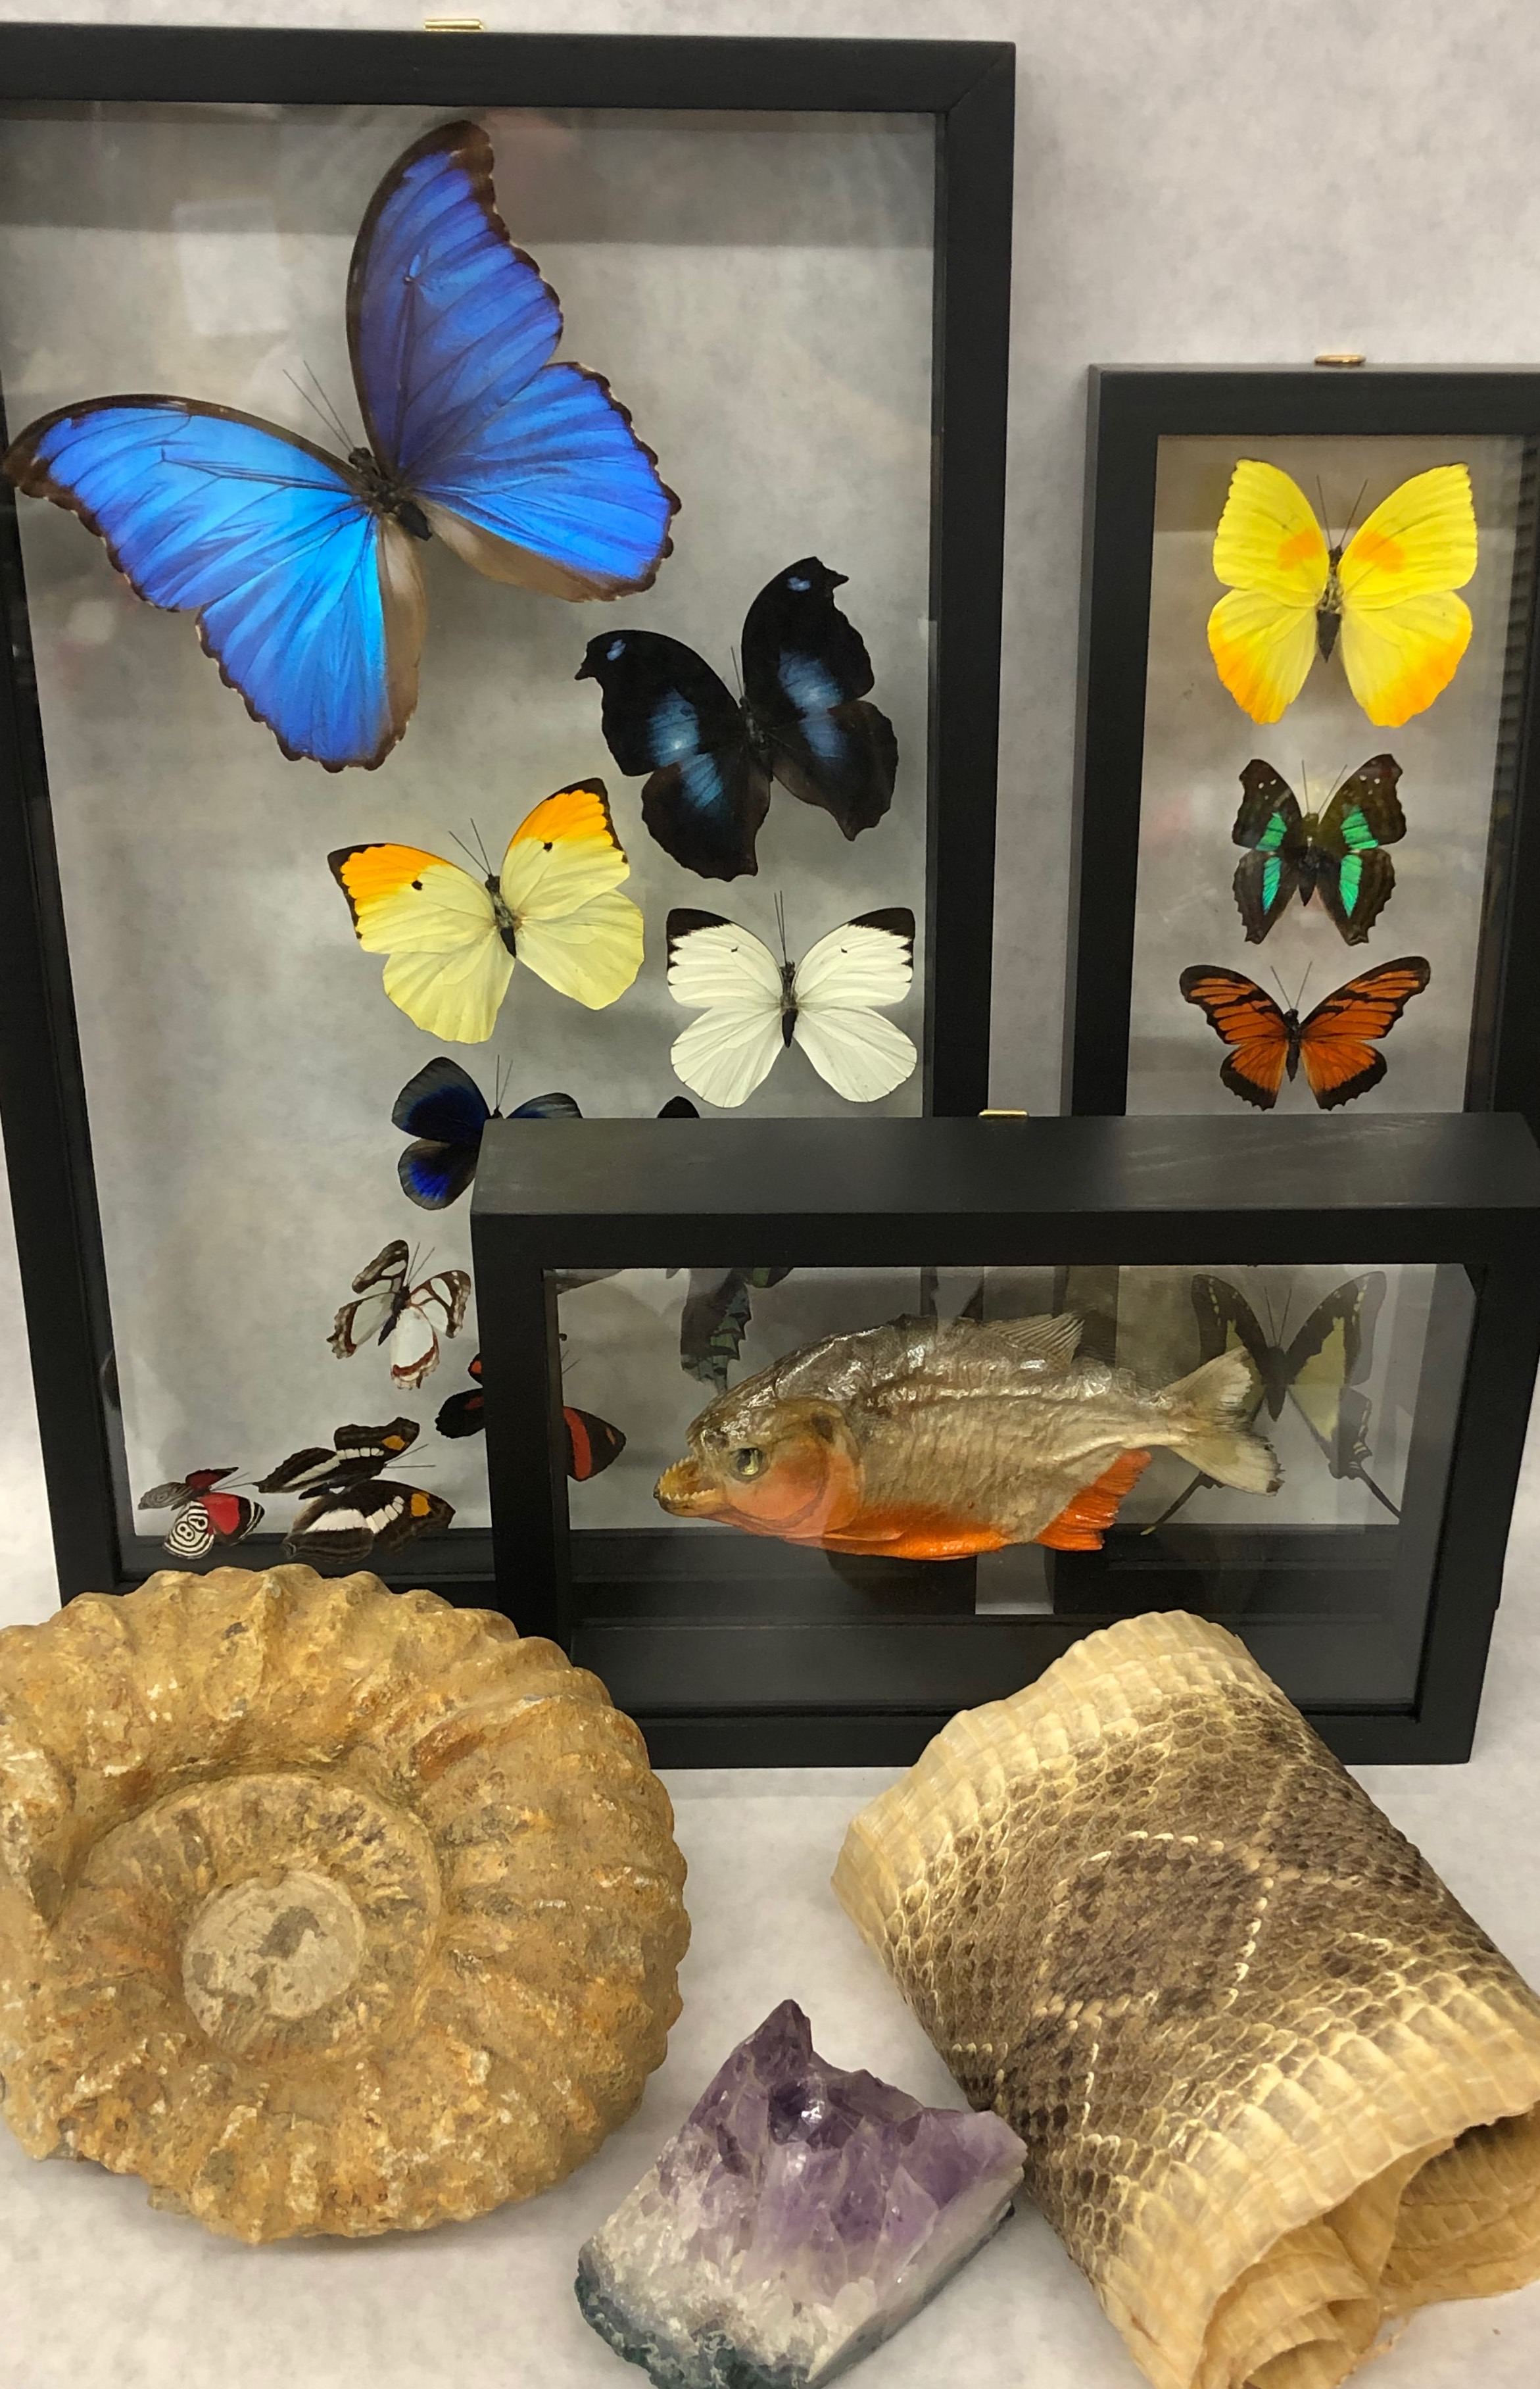 Oddities for sale, butterflies for sale, rare items for sale,